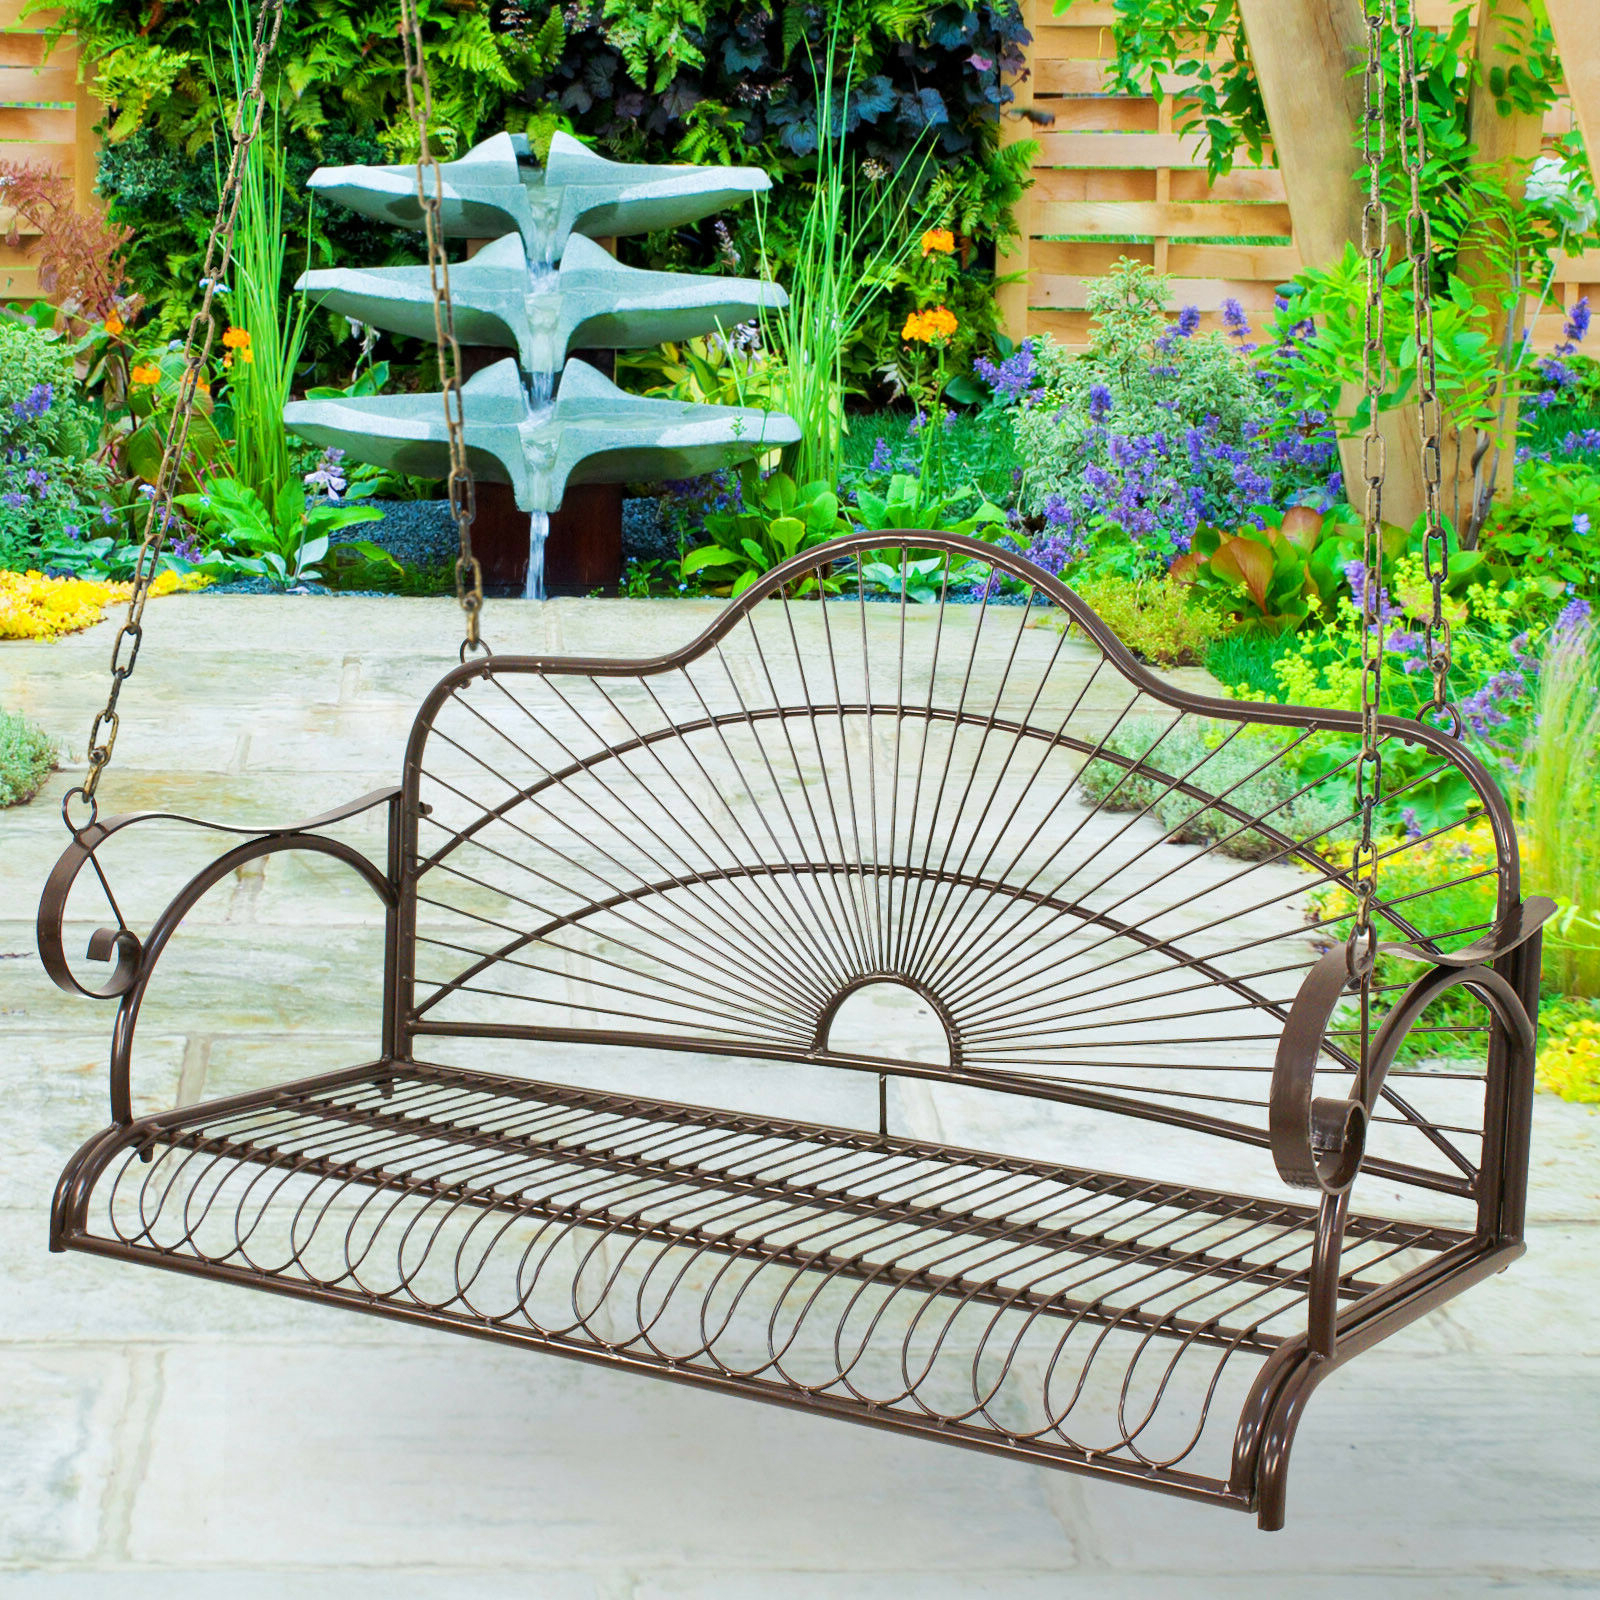 Most Recent Hanging Iron Metal Porch Swing Chair Bench Backyard Garden For 2 Person Gray Steel Outdoor Swings (Gallery 25 of 30)